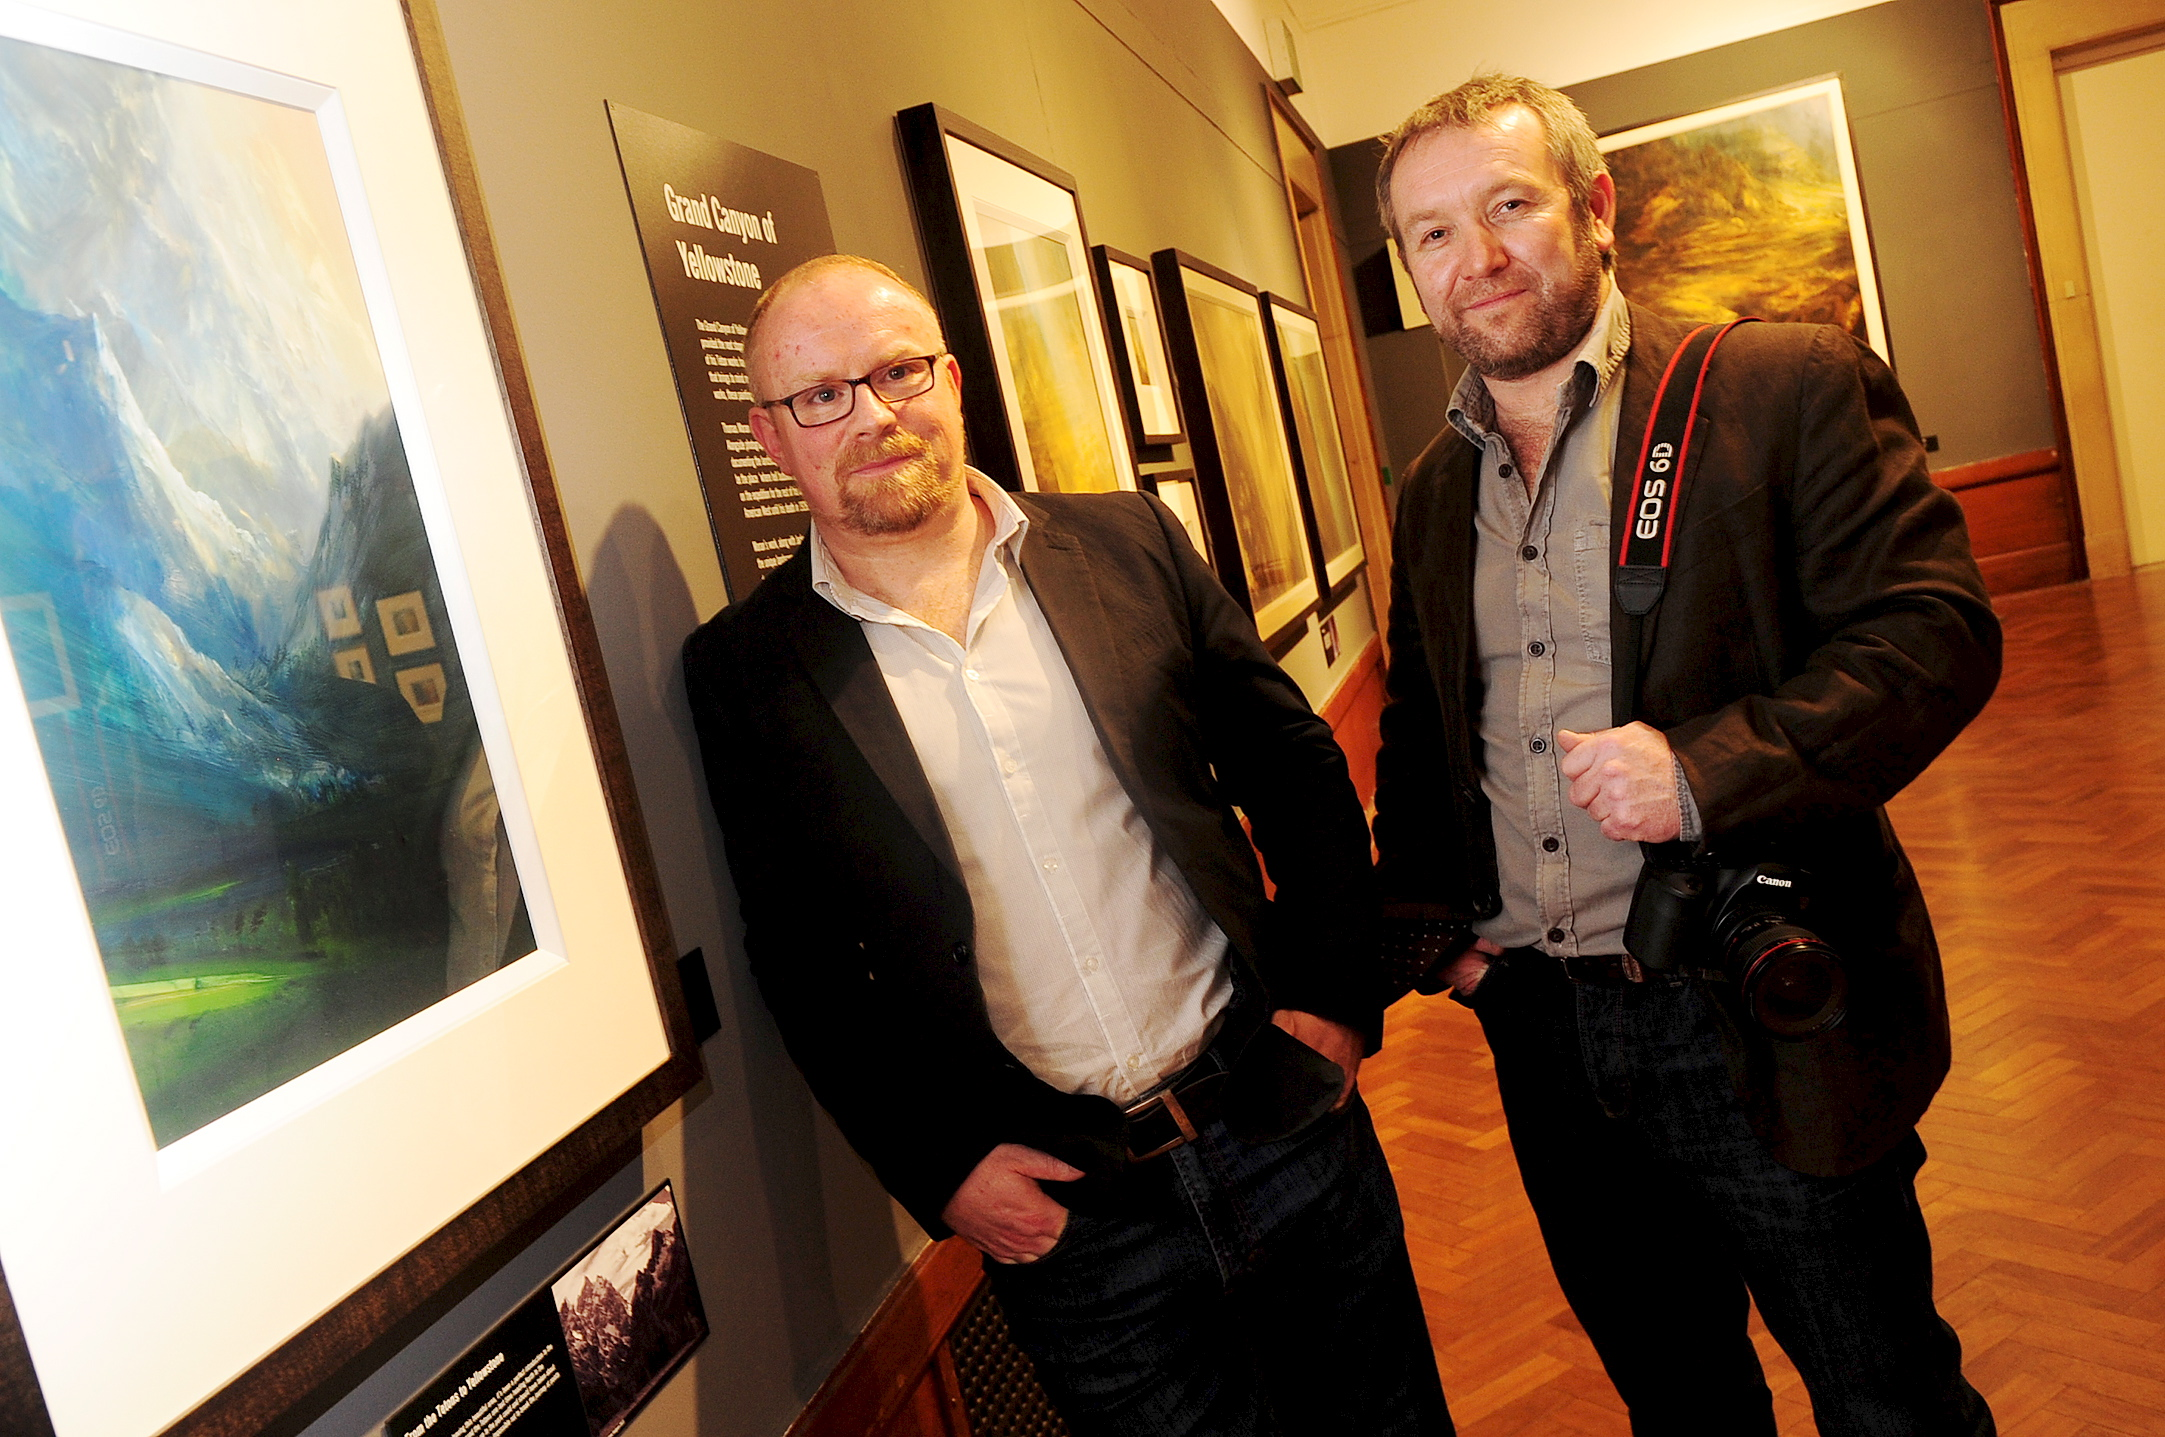 James Naughton exhibition: Artist inspired by Thomas Moran launches exhibition in Bolton